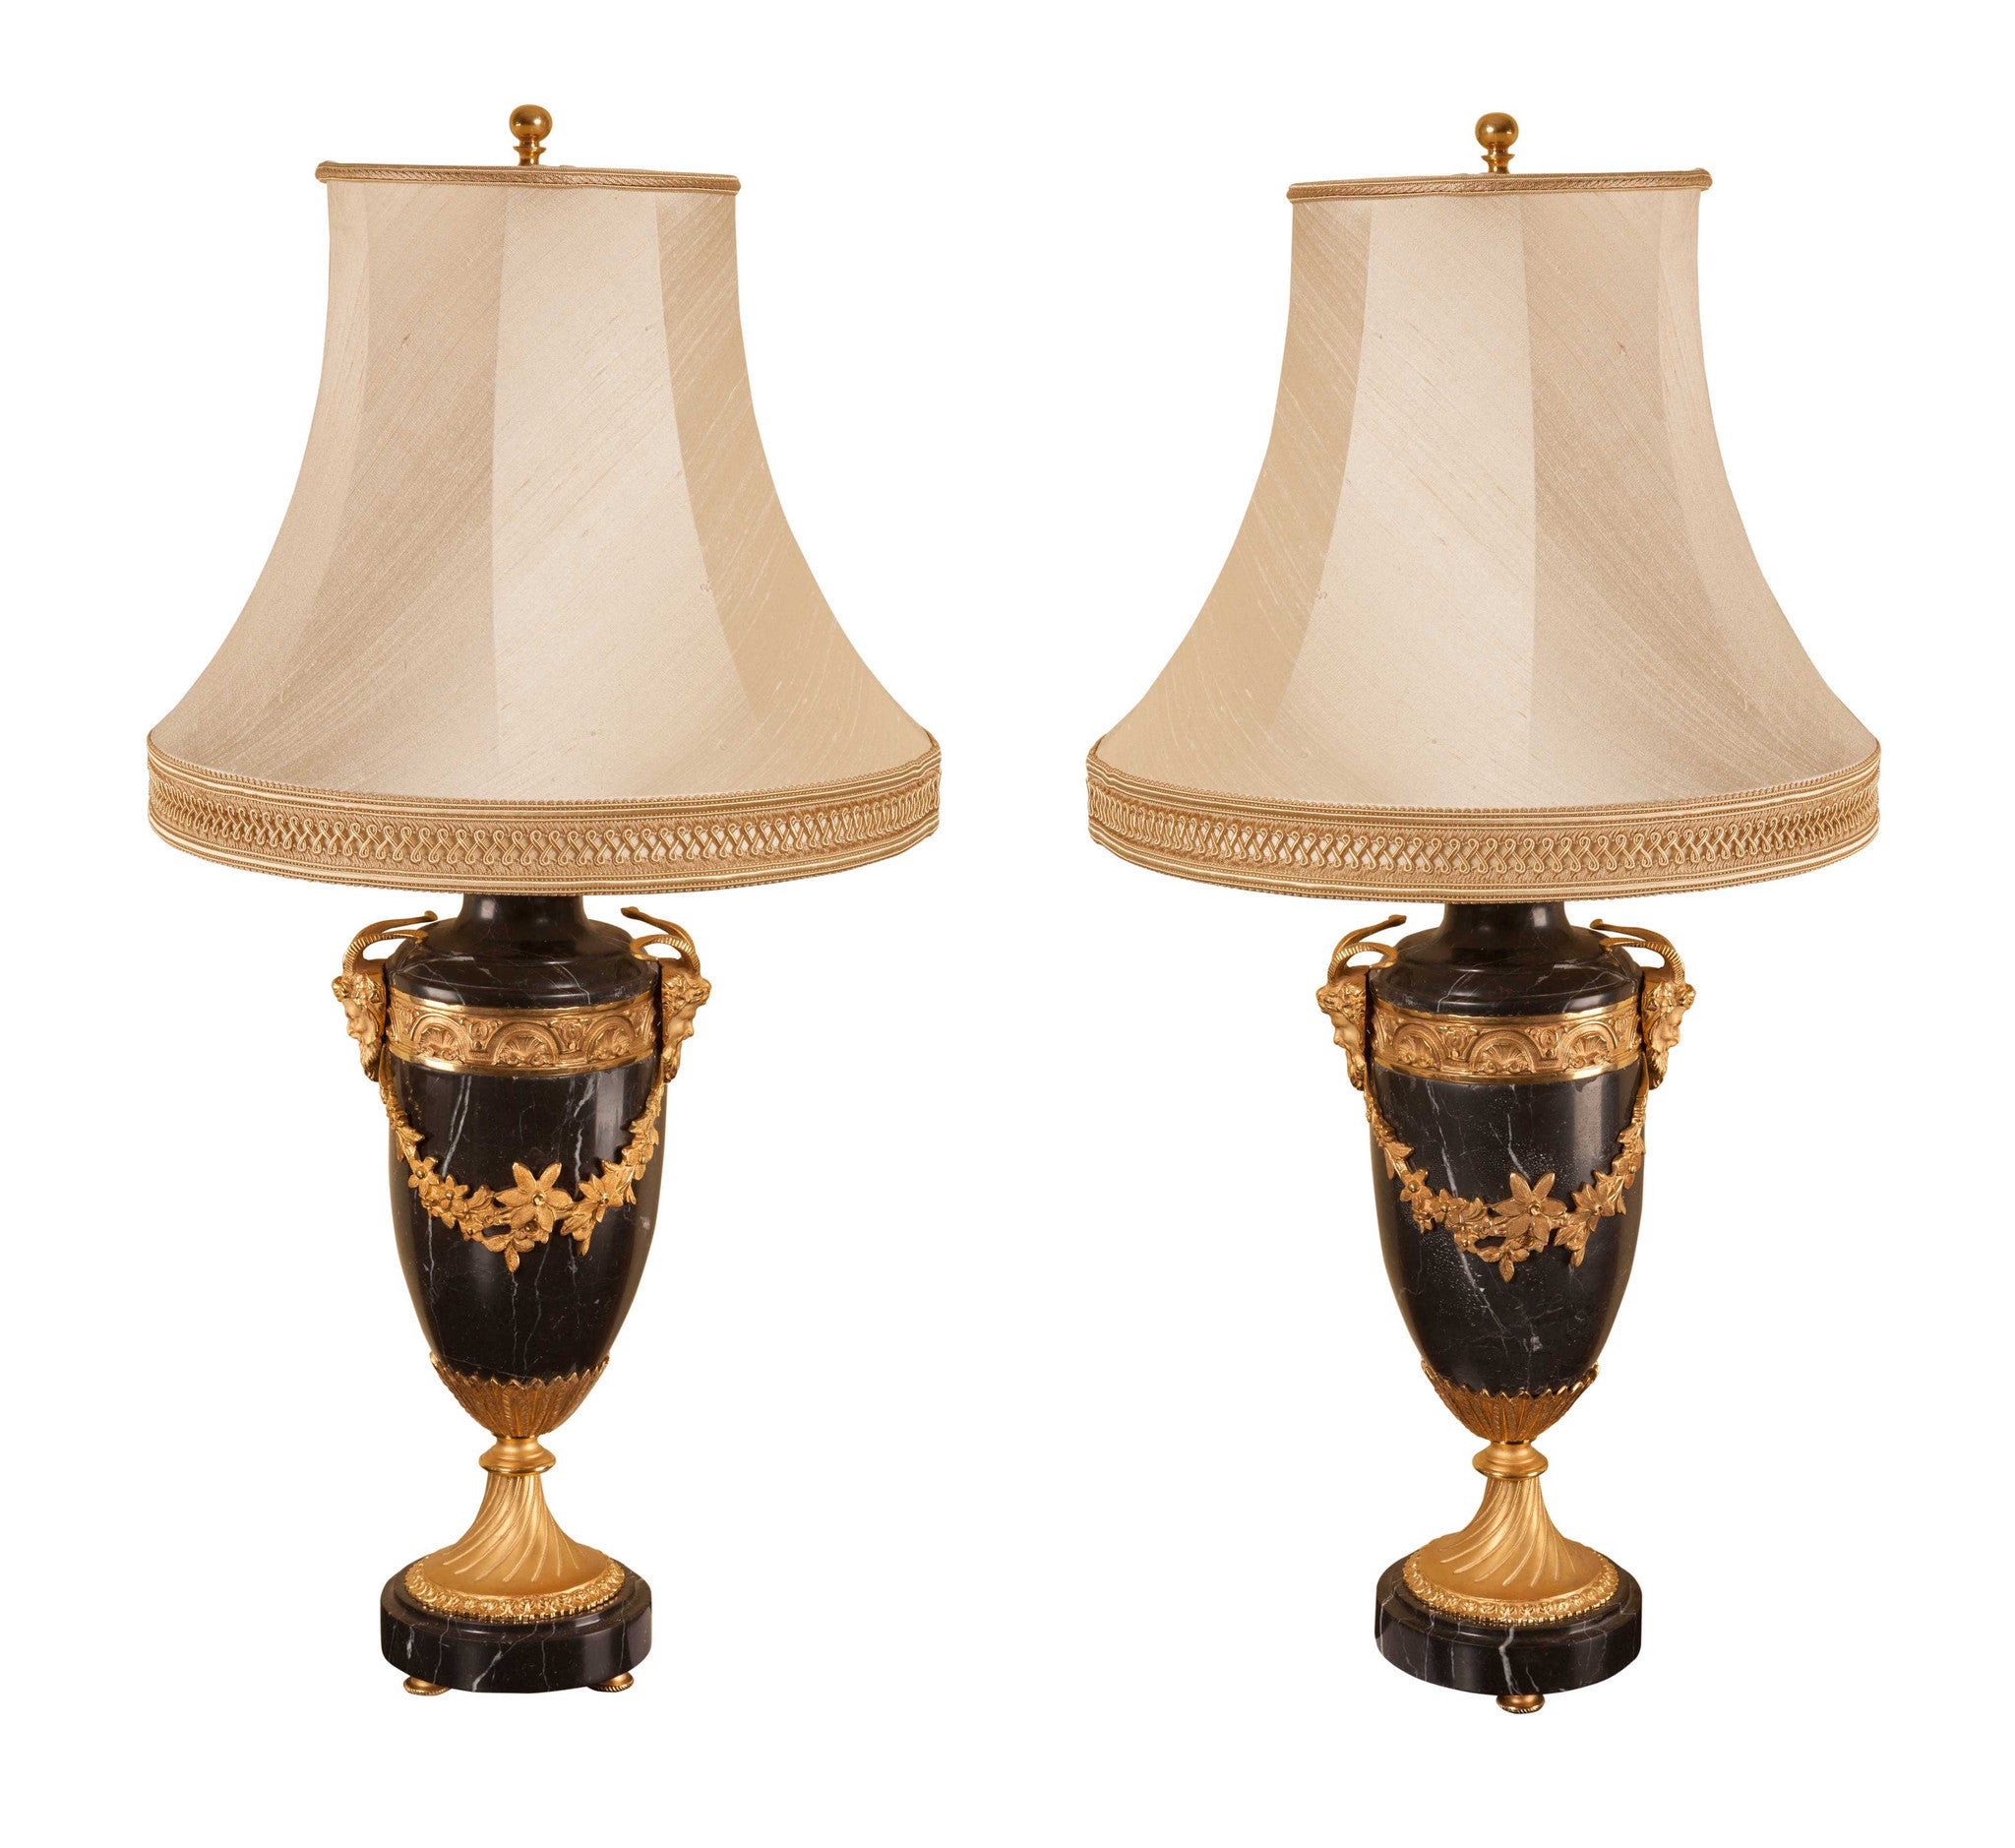 Pair Of Black Marble Table Lamps With Silk Shades